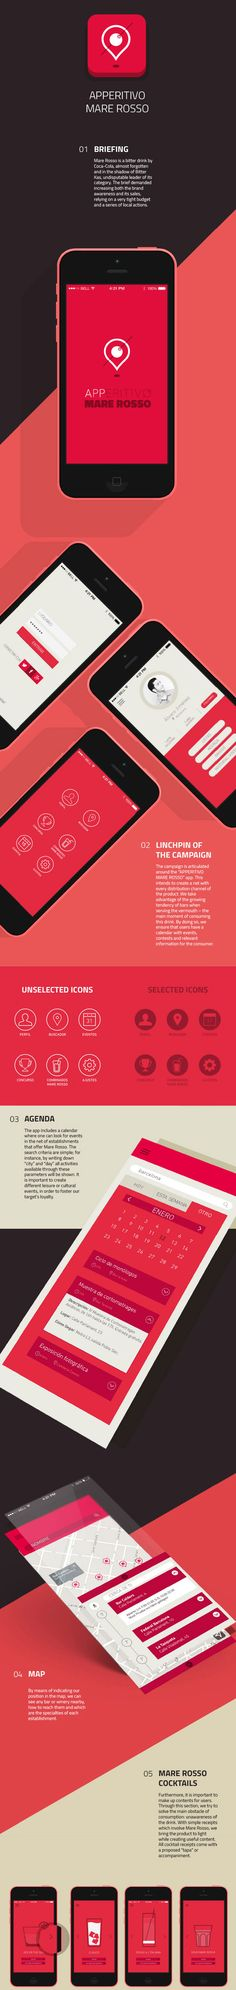 Mare Rosso mobile application design - #ux #ui